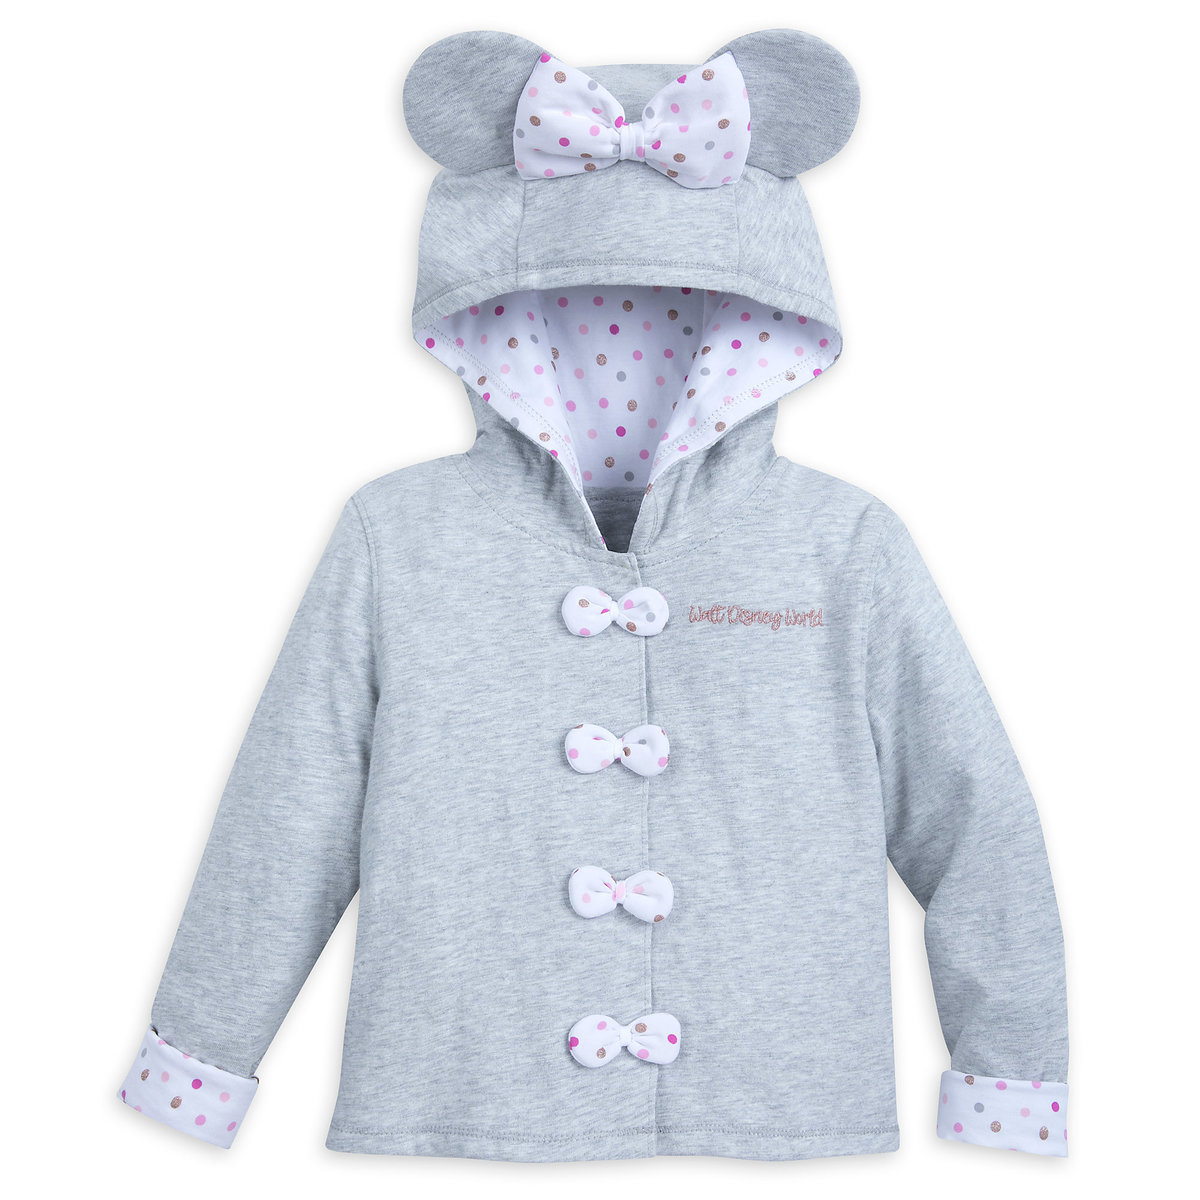 f2a943f5cd214 Product Image of Minnie Mouse Hooded Jacket for Kids - Walt Disney World # 1